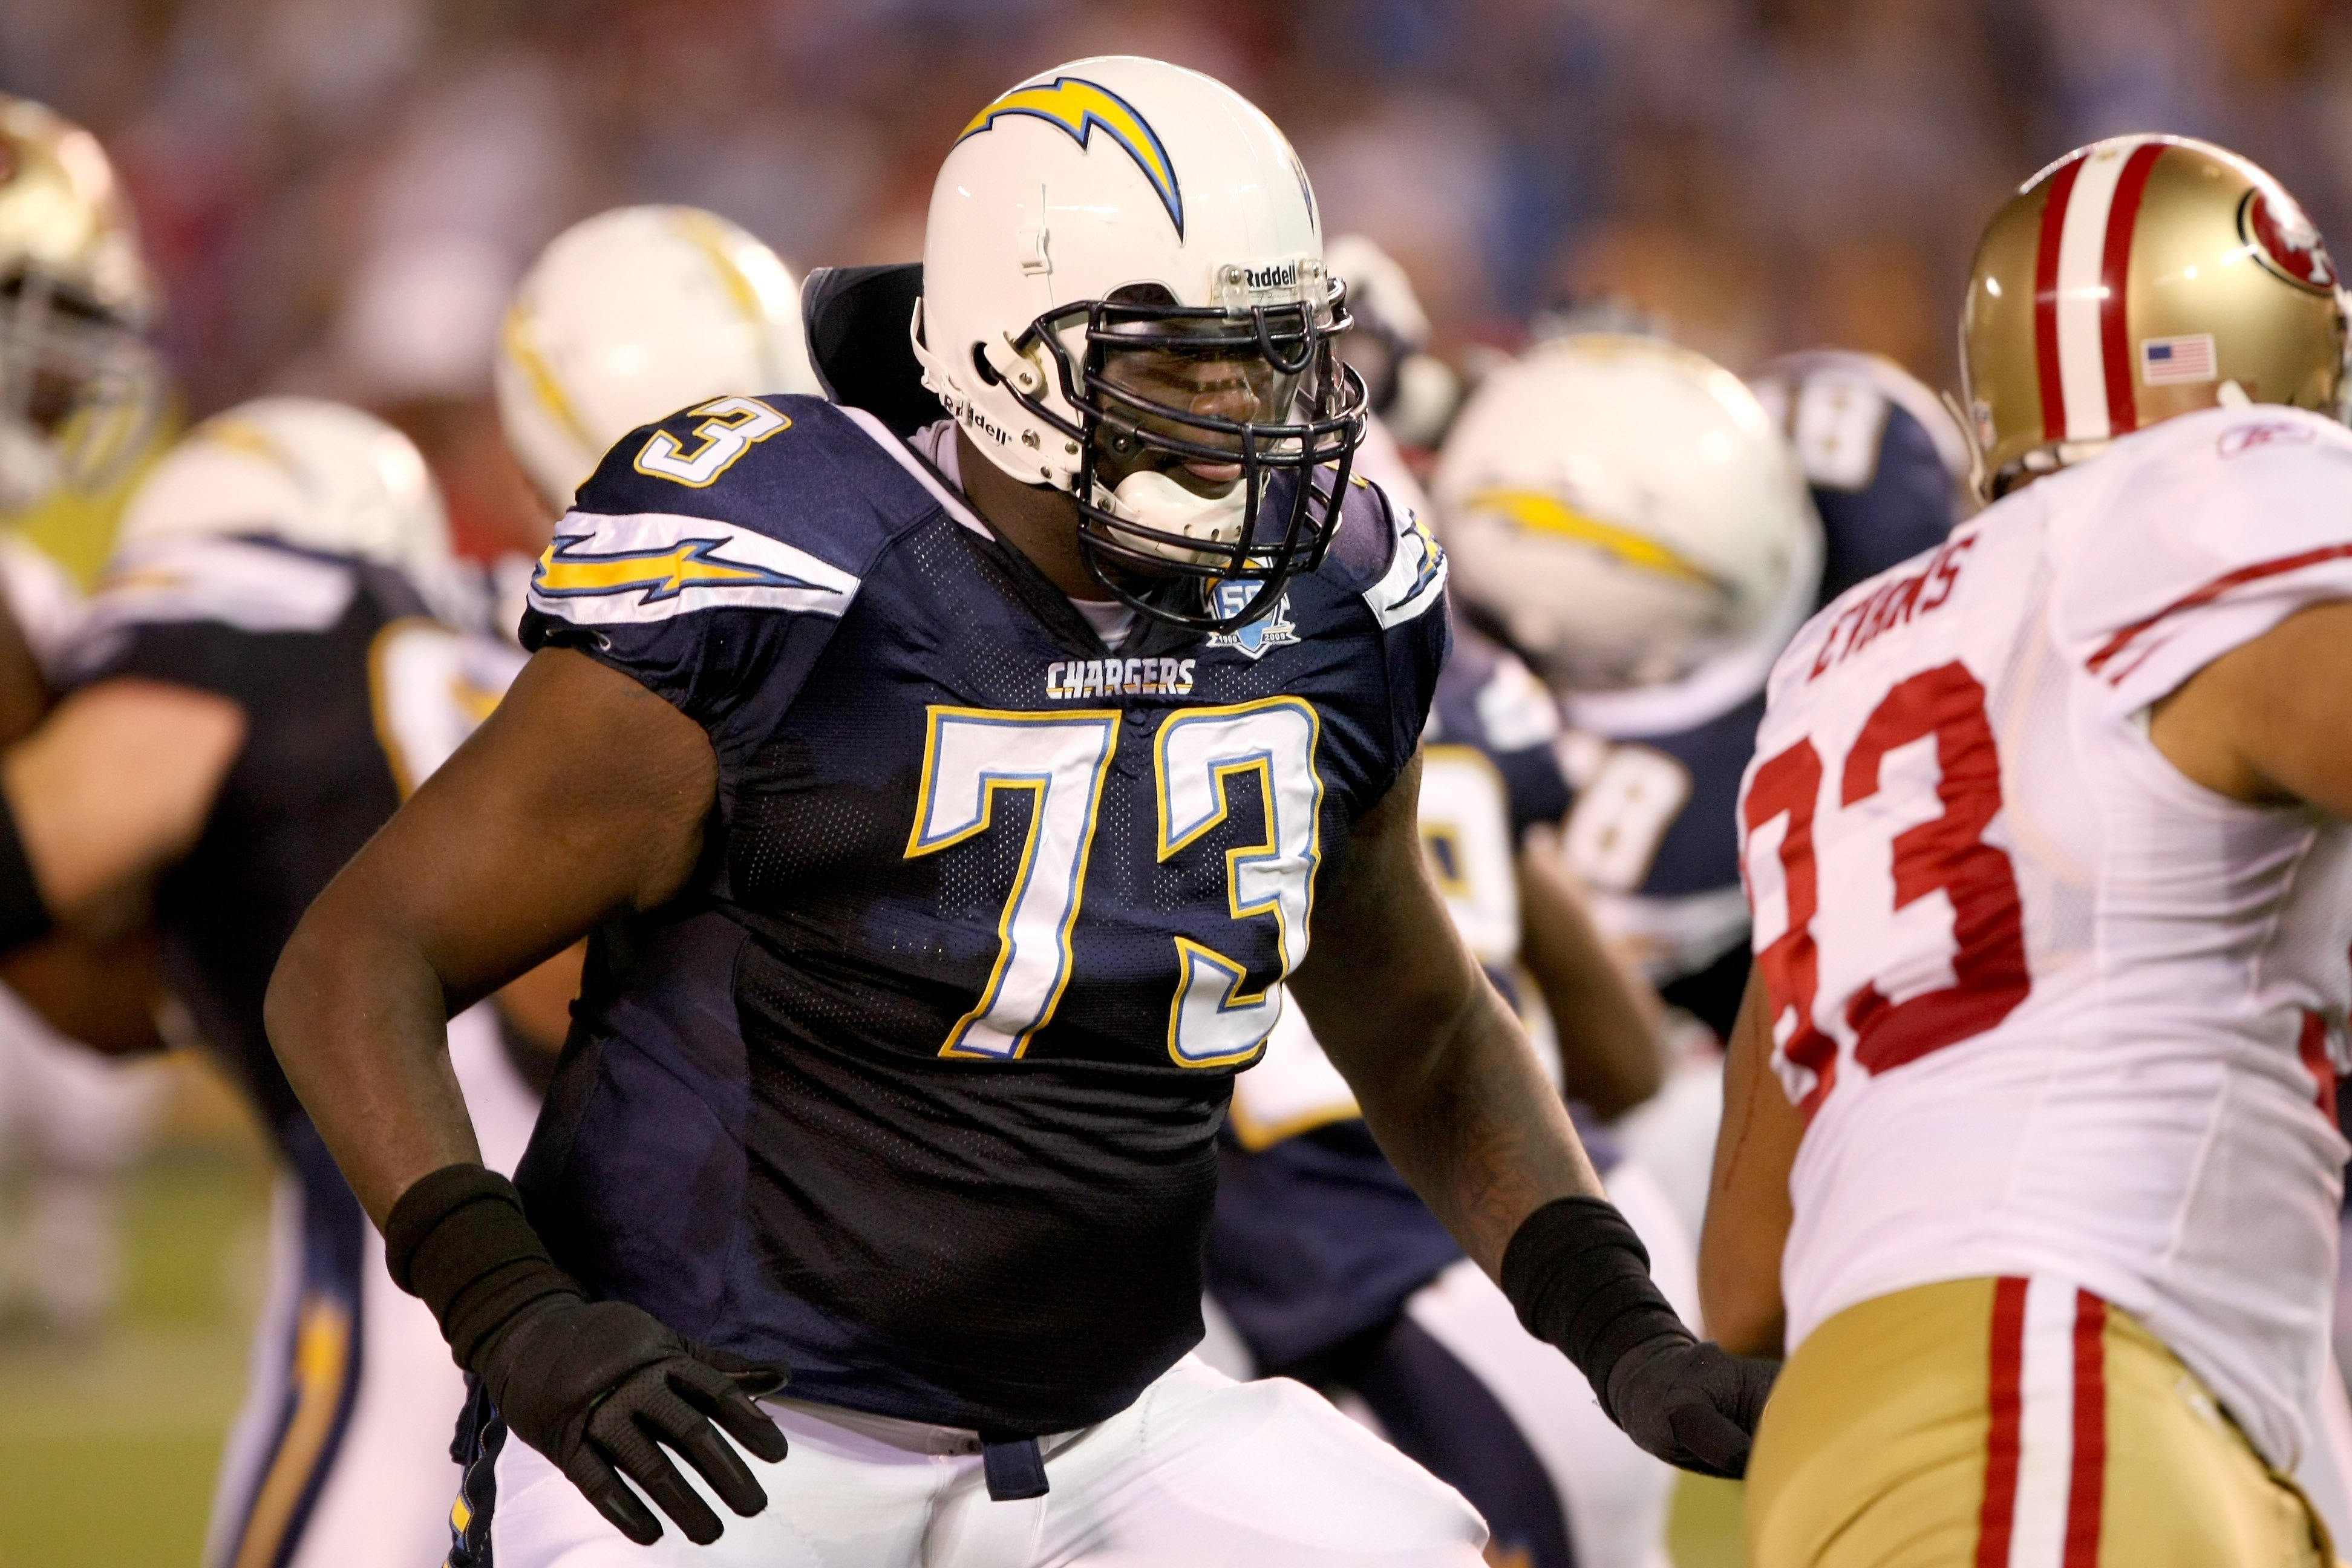 SAN DIEGO - SEPTEMBER 4:  Tackle Marcus McNeill #73 of the San Diego Chargers blocks against the San Francisco 49ers on September 4, 2009 at Qualcomm Stadium in San Diego, California.   The Chrgers won 26-7.  (Photo by Stephen Dunn/Getty Images)